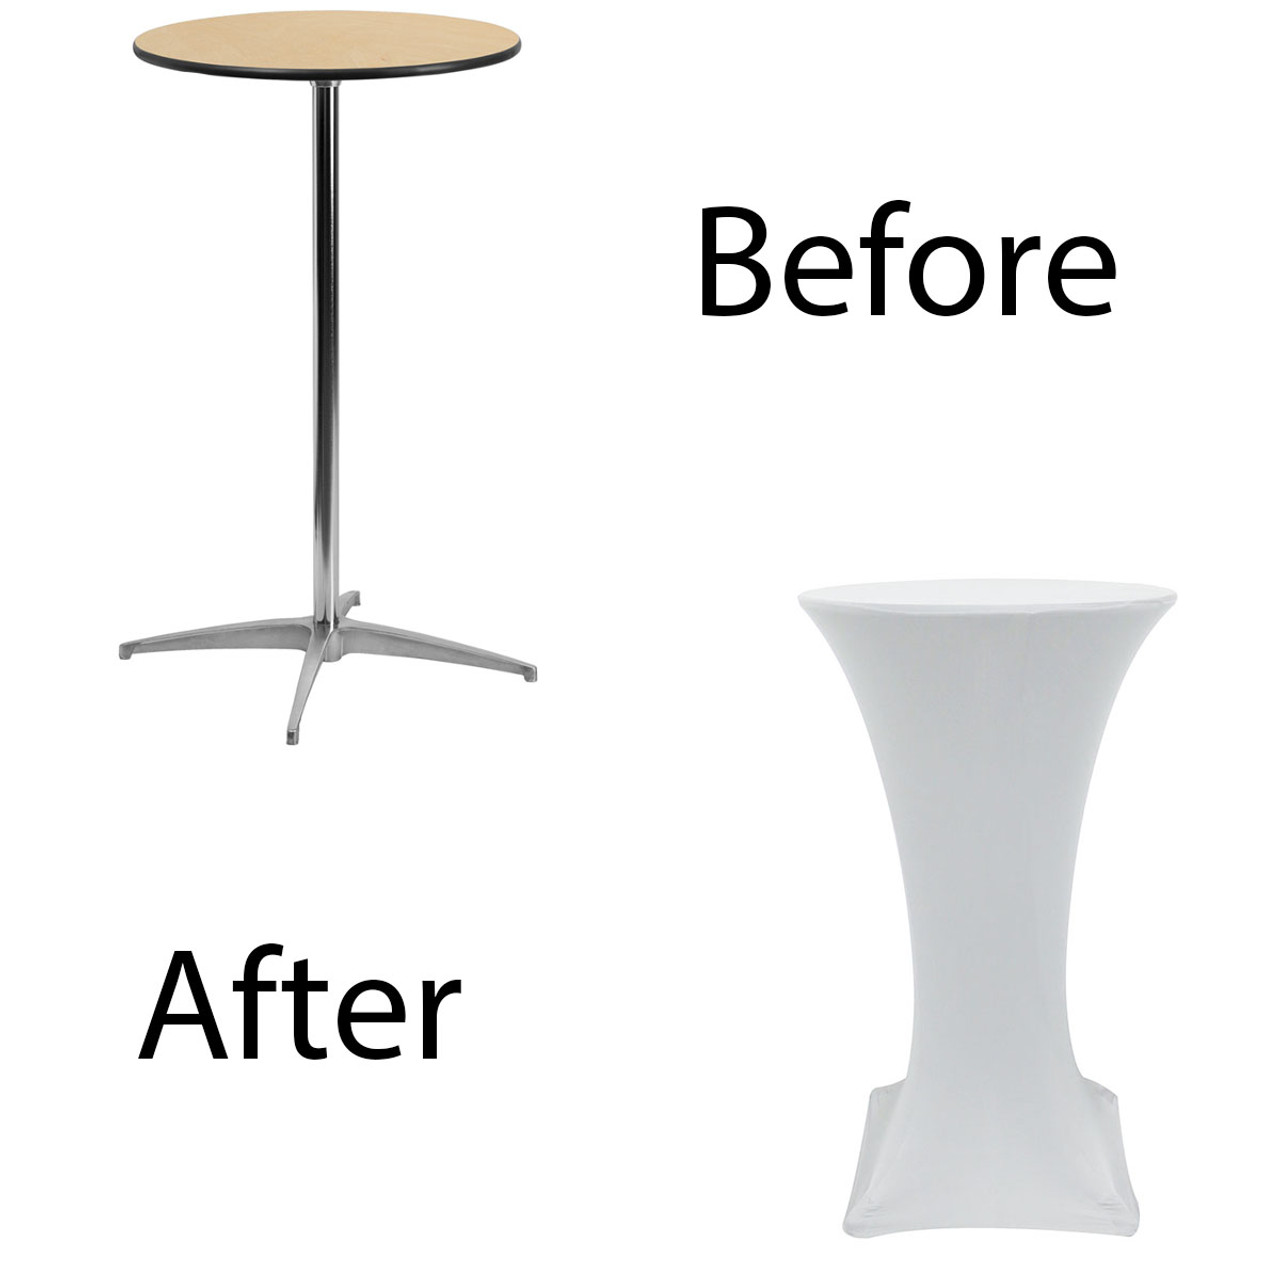 wholesale chairs and tables in los angeles chair positions for scaling 24 inch highboy cocktail round stretch spandex table cover white before after